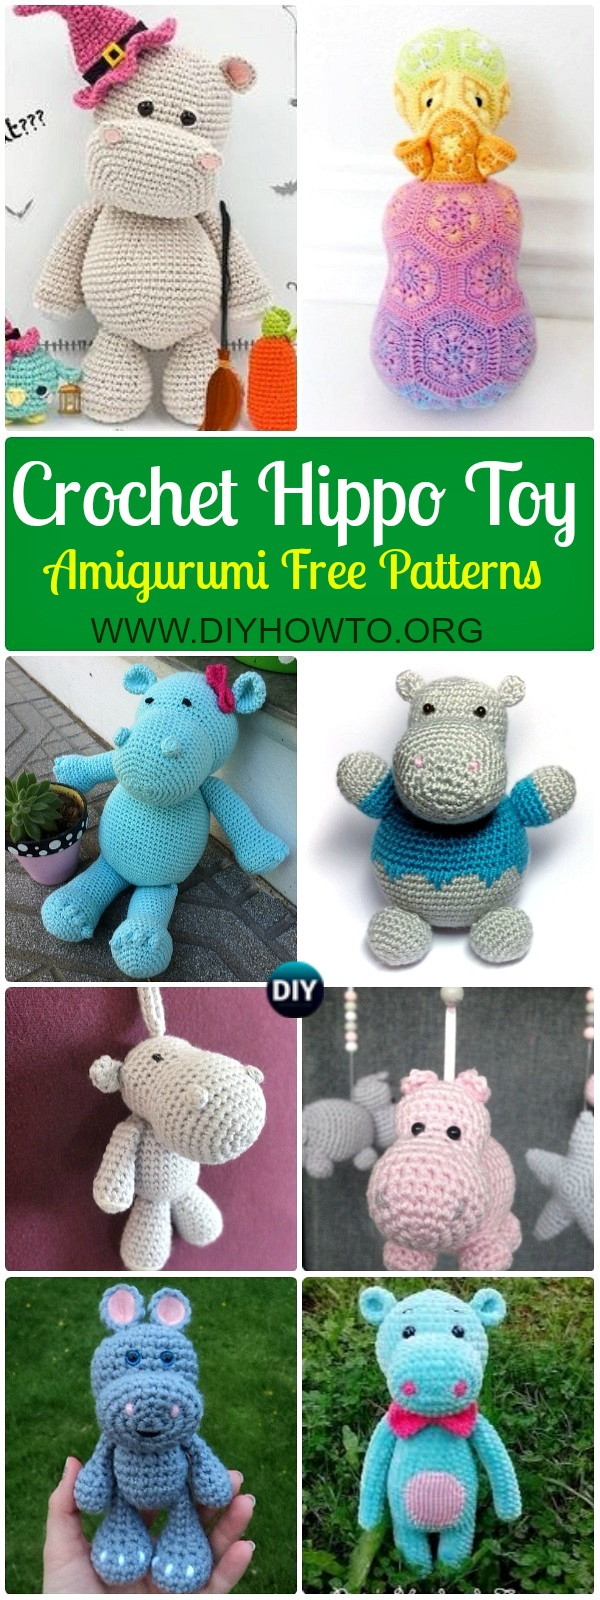 Amigurumi Crochet Hippo Toy Softies Free Patterns & Instructions